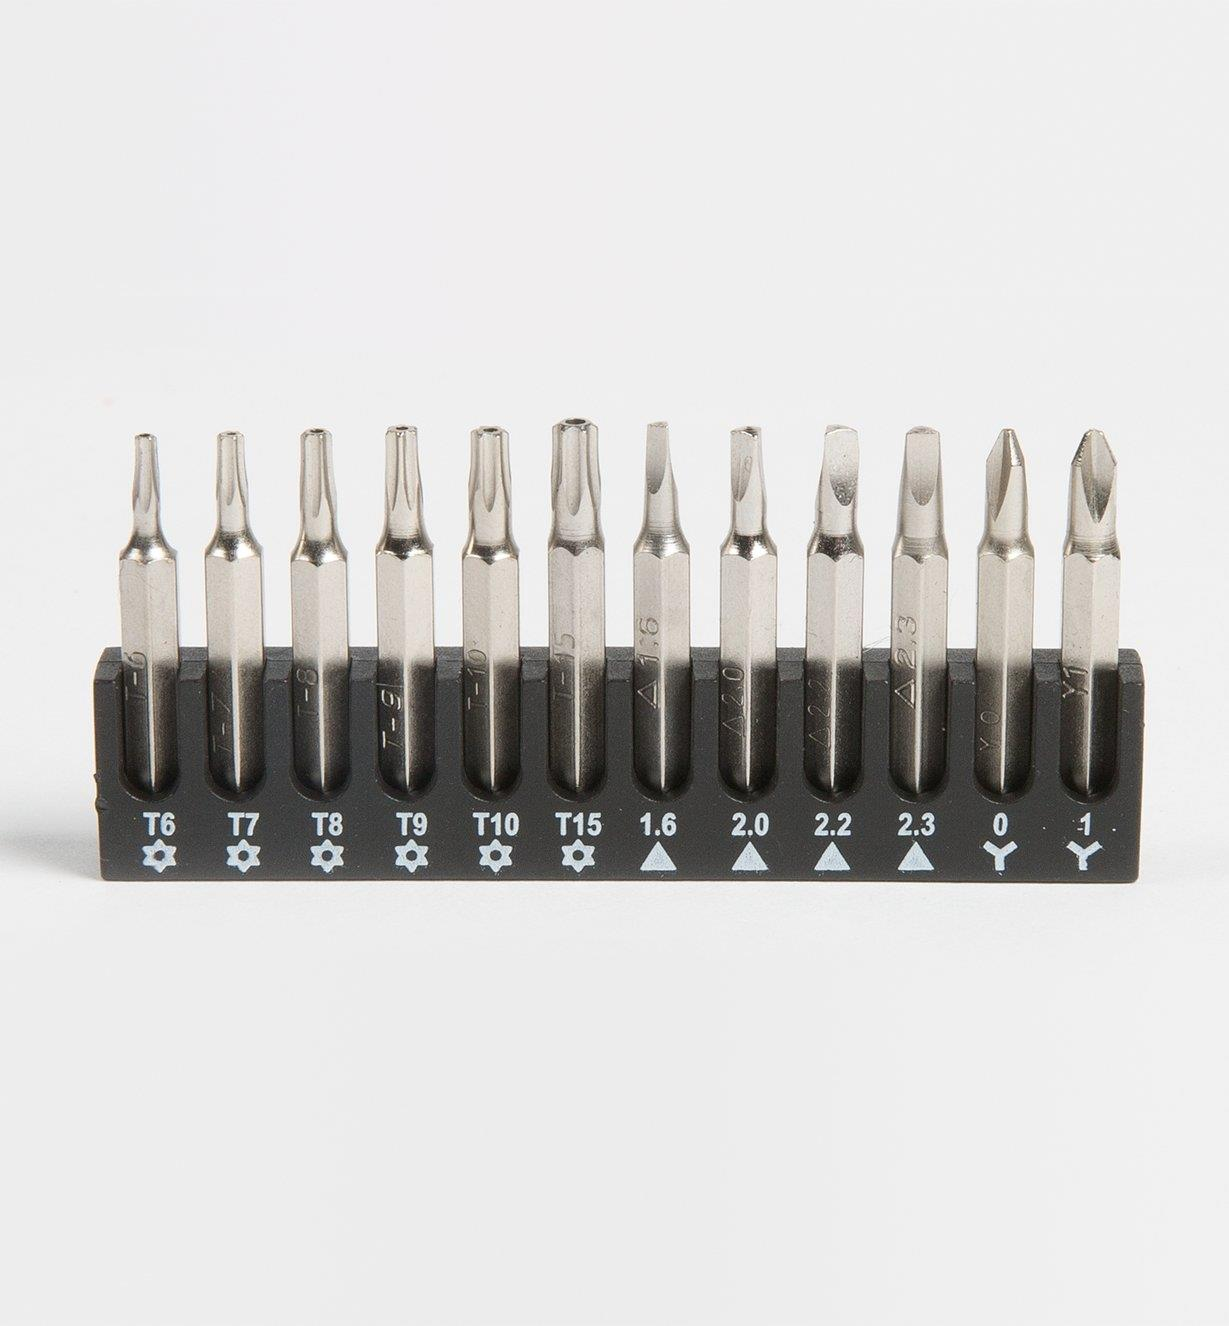 Torx-style tamper-proof, triangle and Phillips bits